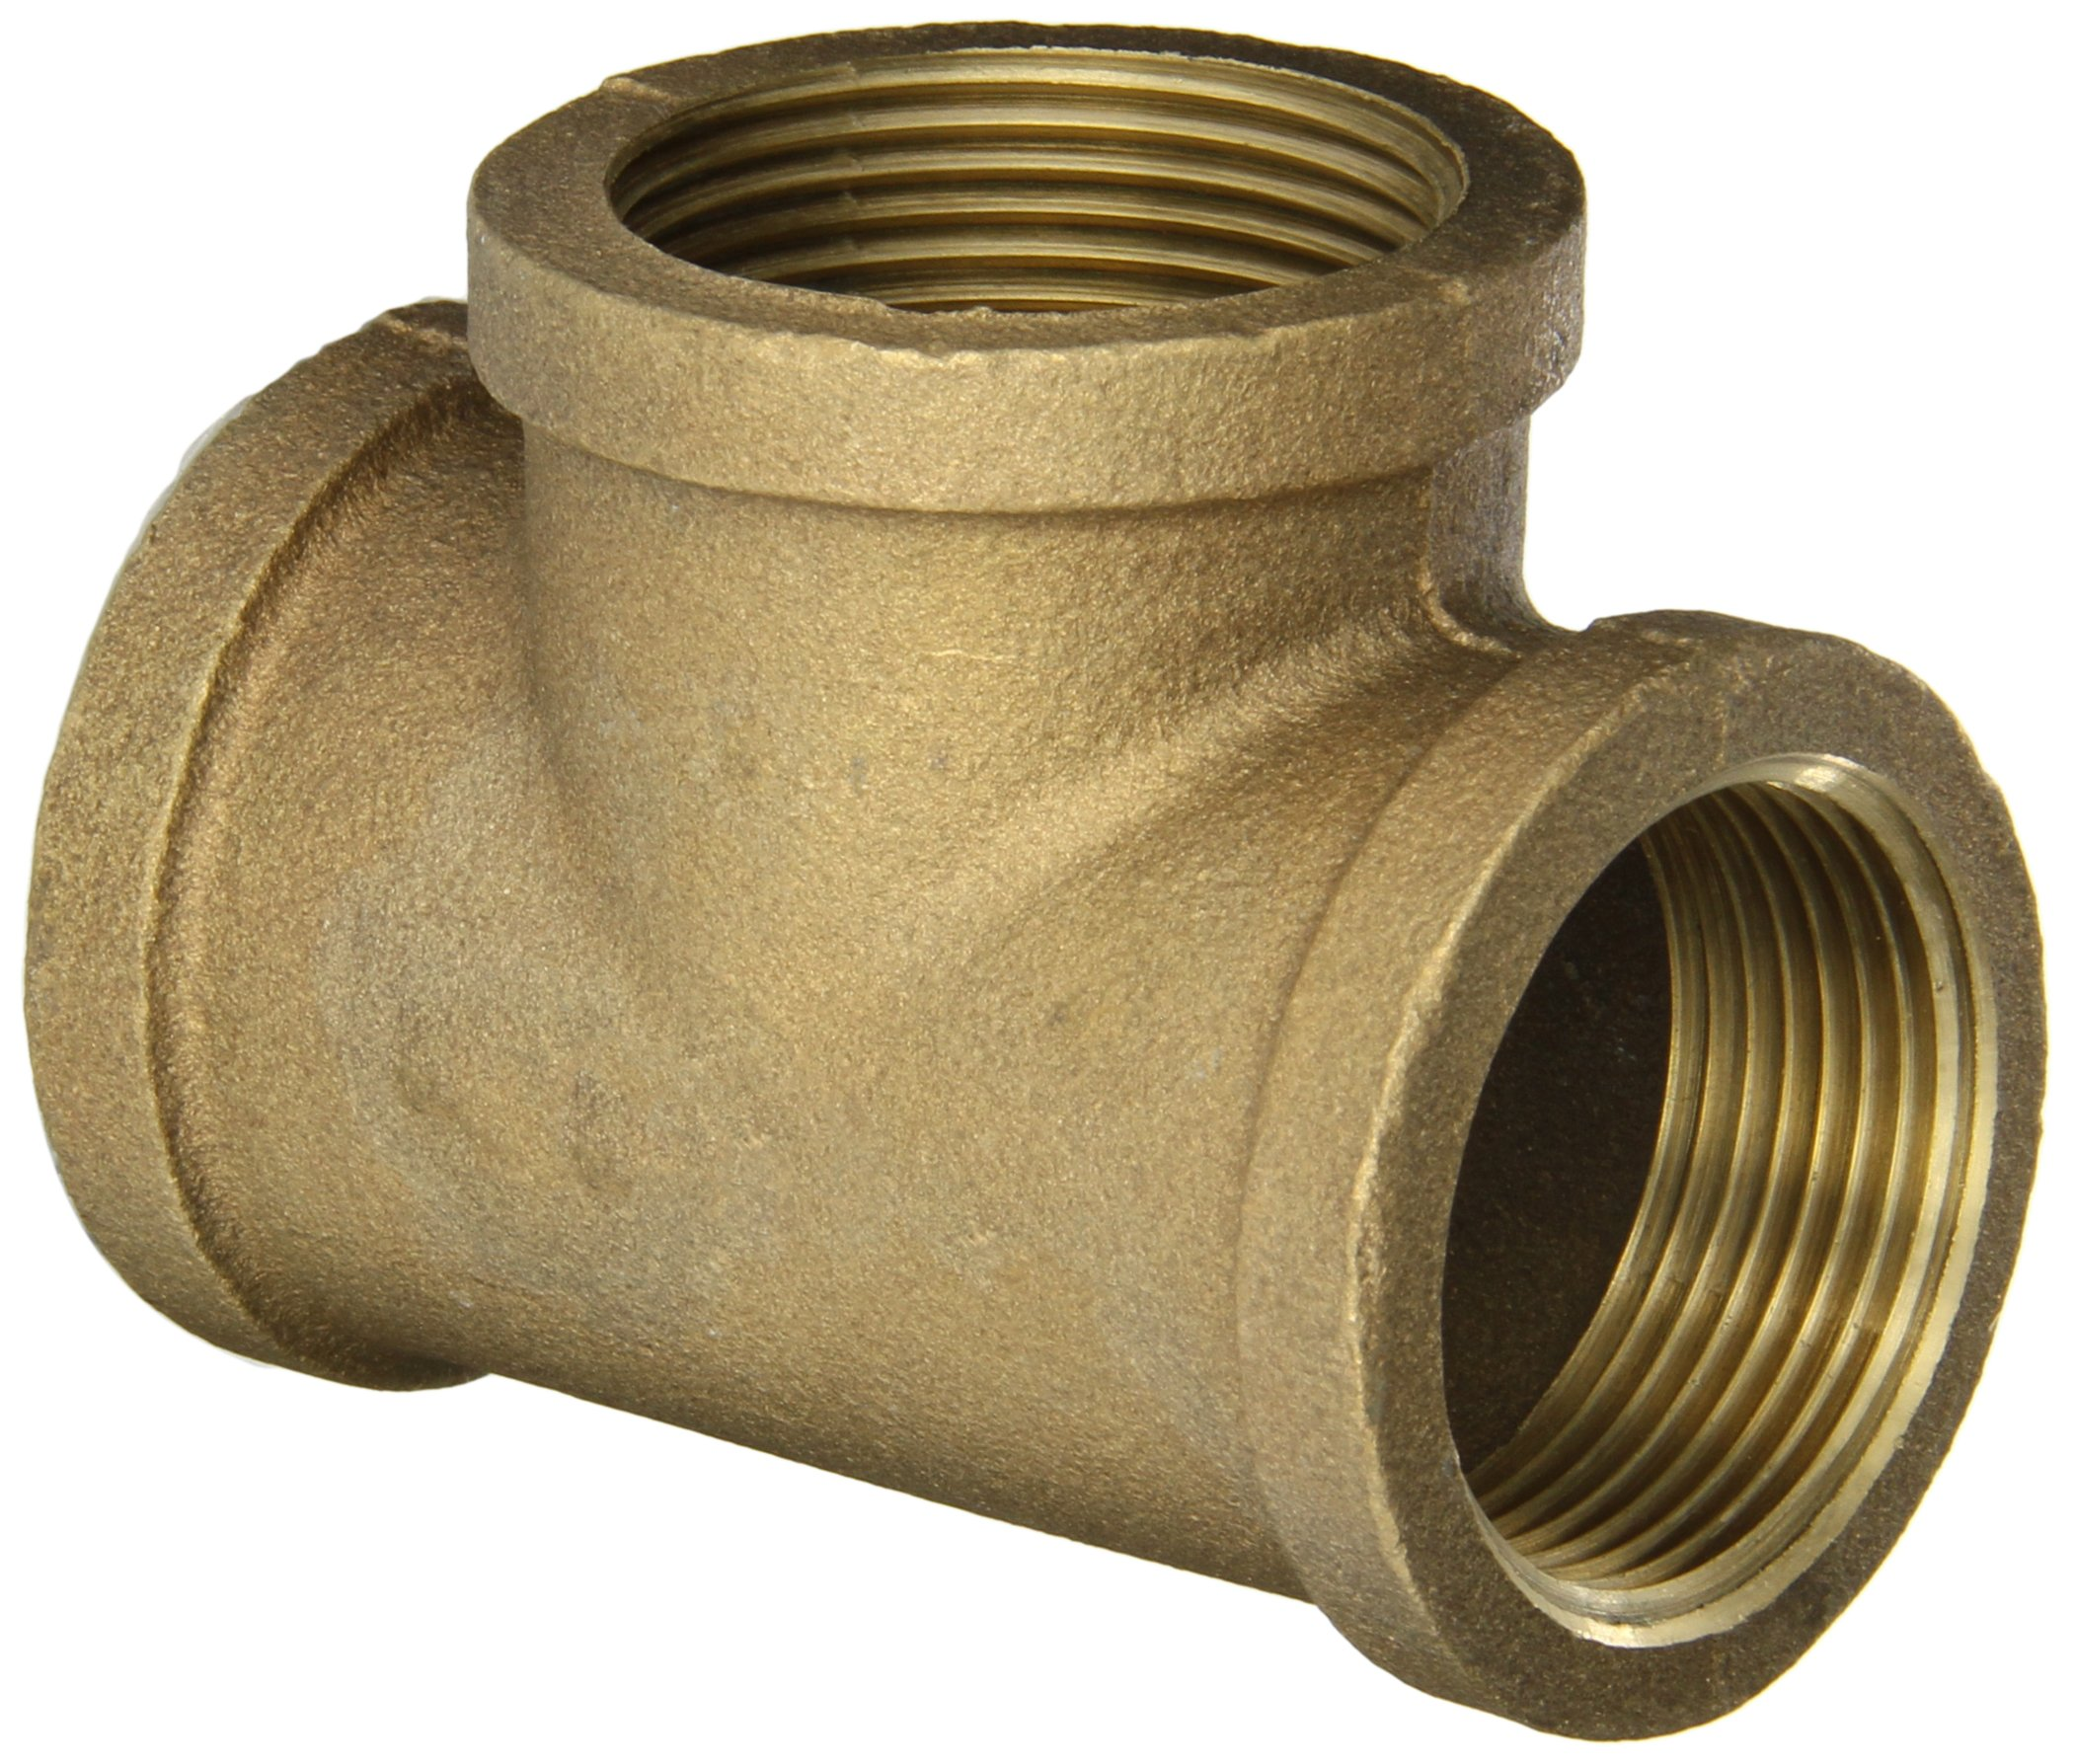 Reducing Tee Anderson Metals 38106 Red Brass Pipe Fitting 1 x 1 x 1//2 Female Pipe 1 x 1 x 1//2 Female Pipe 38106-161608